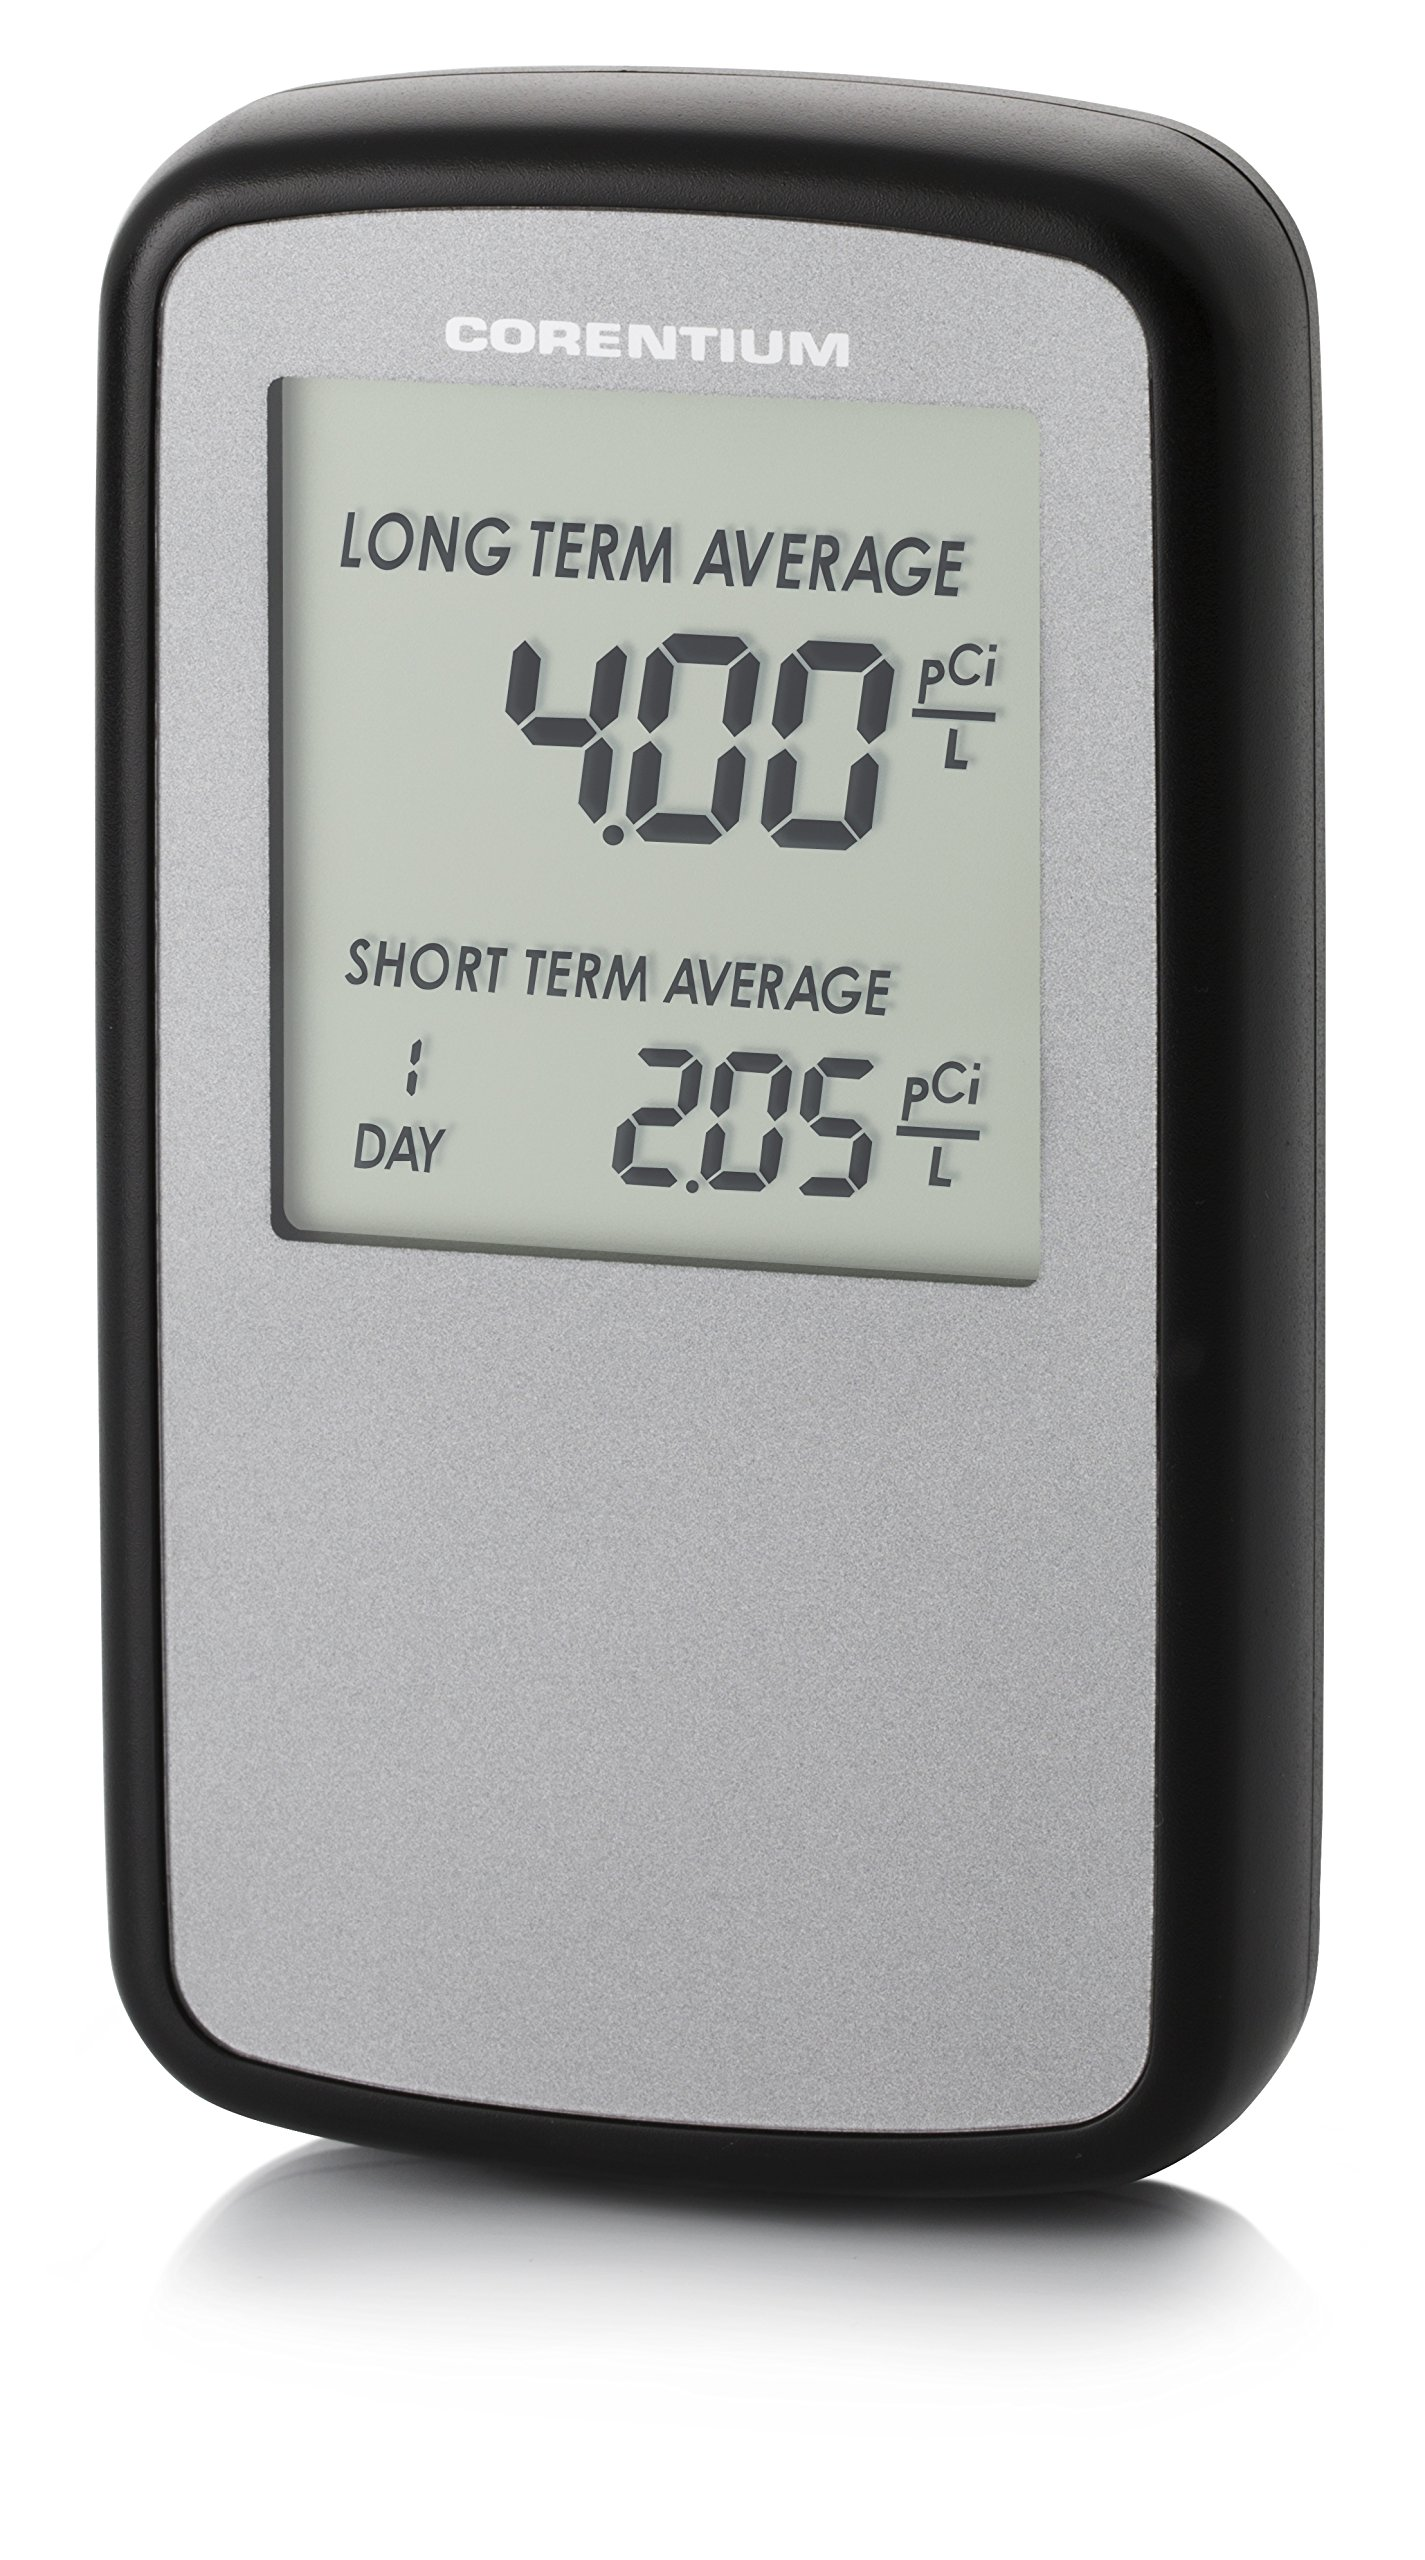 Corentium Home Radon Detector by Airthings 223 Portable, Lightweight, Easy-to-Use, (3) AAA Battery Operated, USA Version, pCi/L